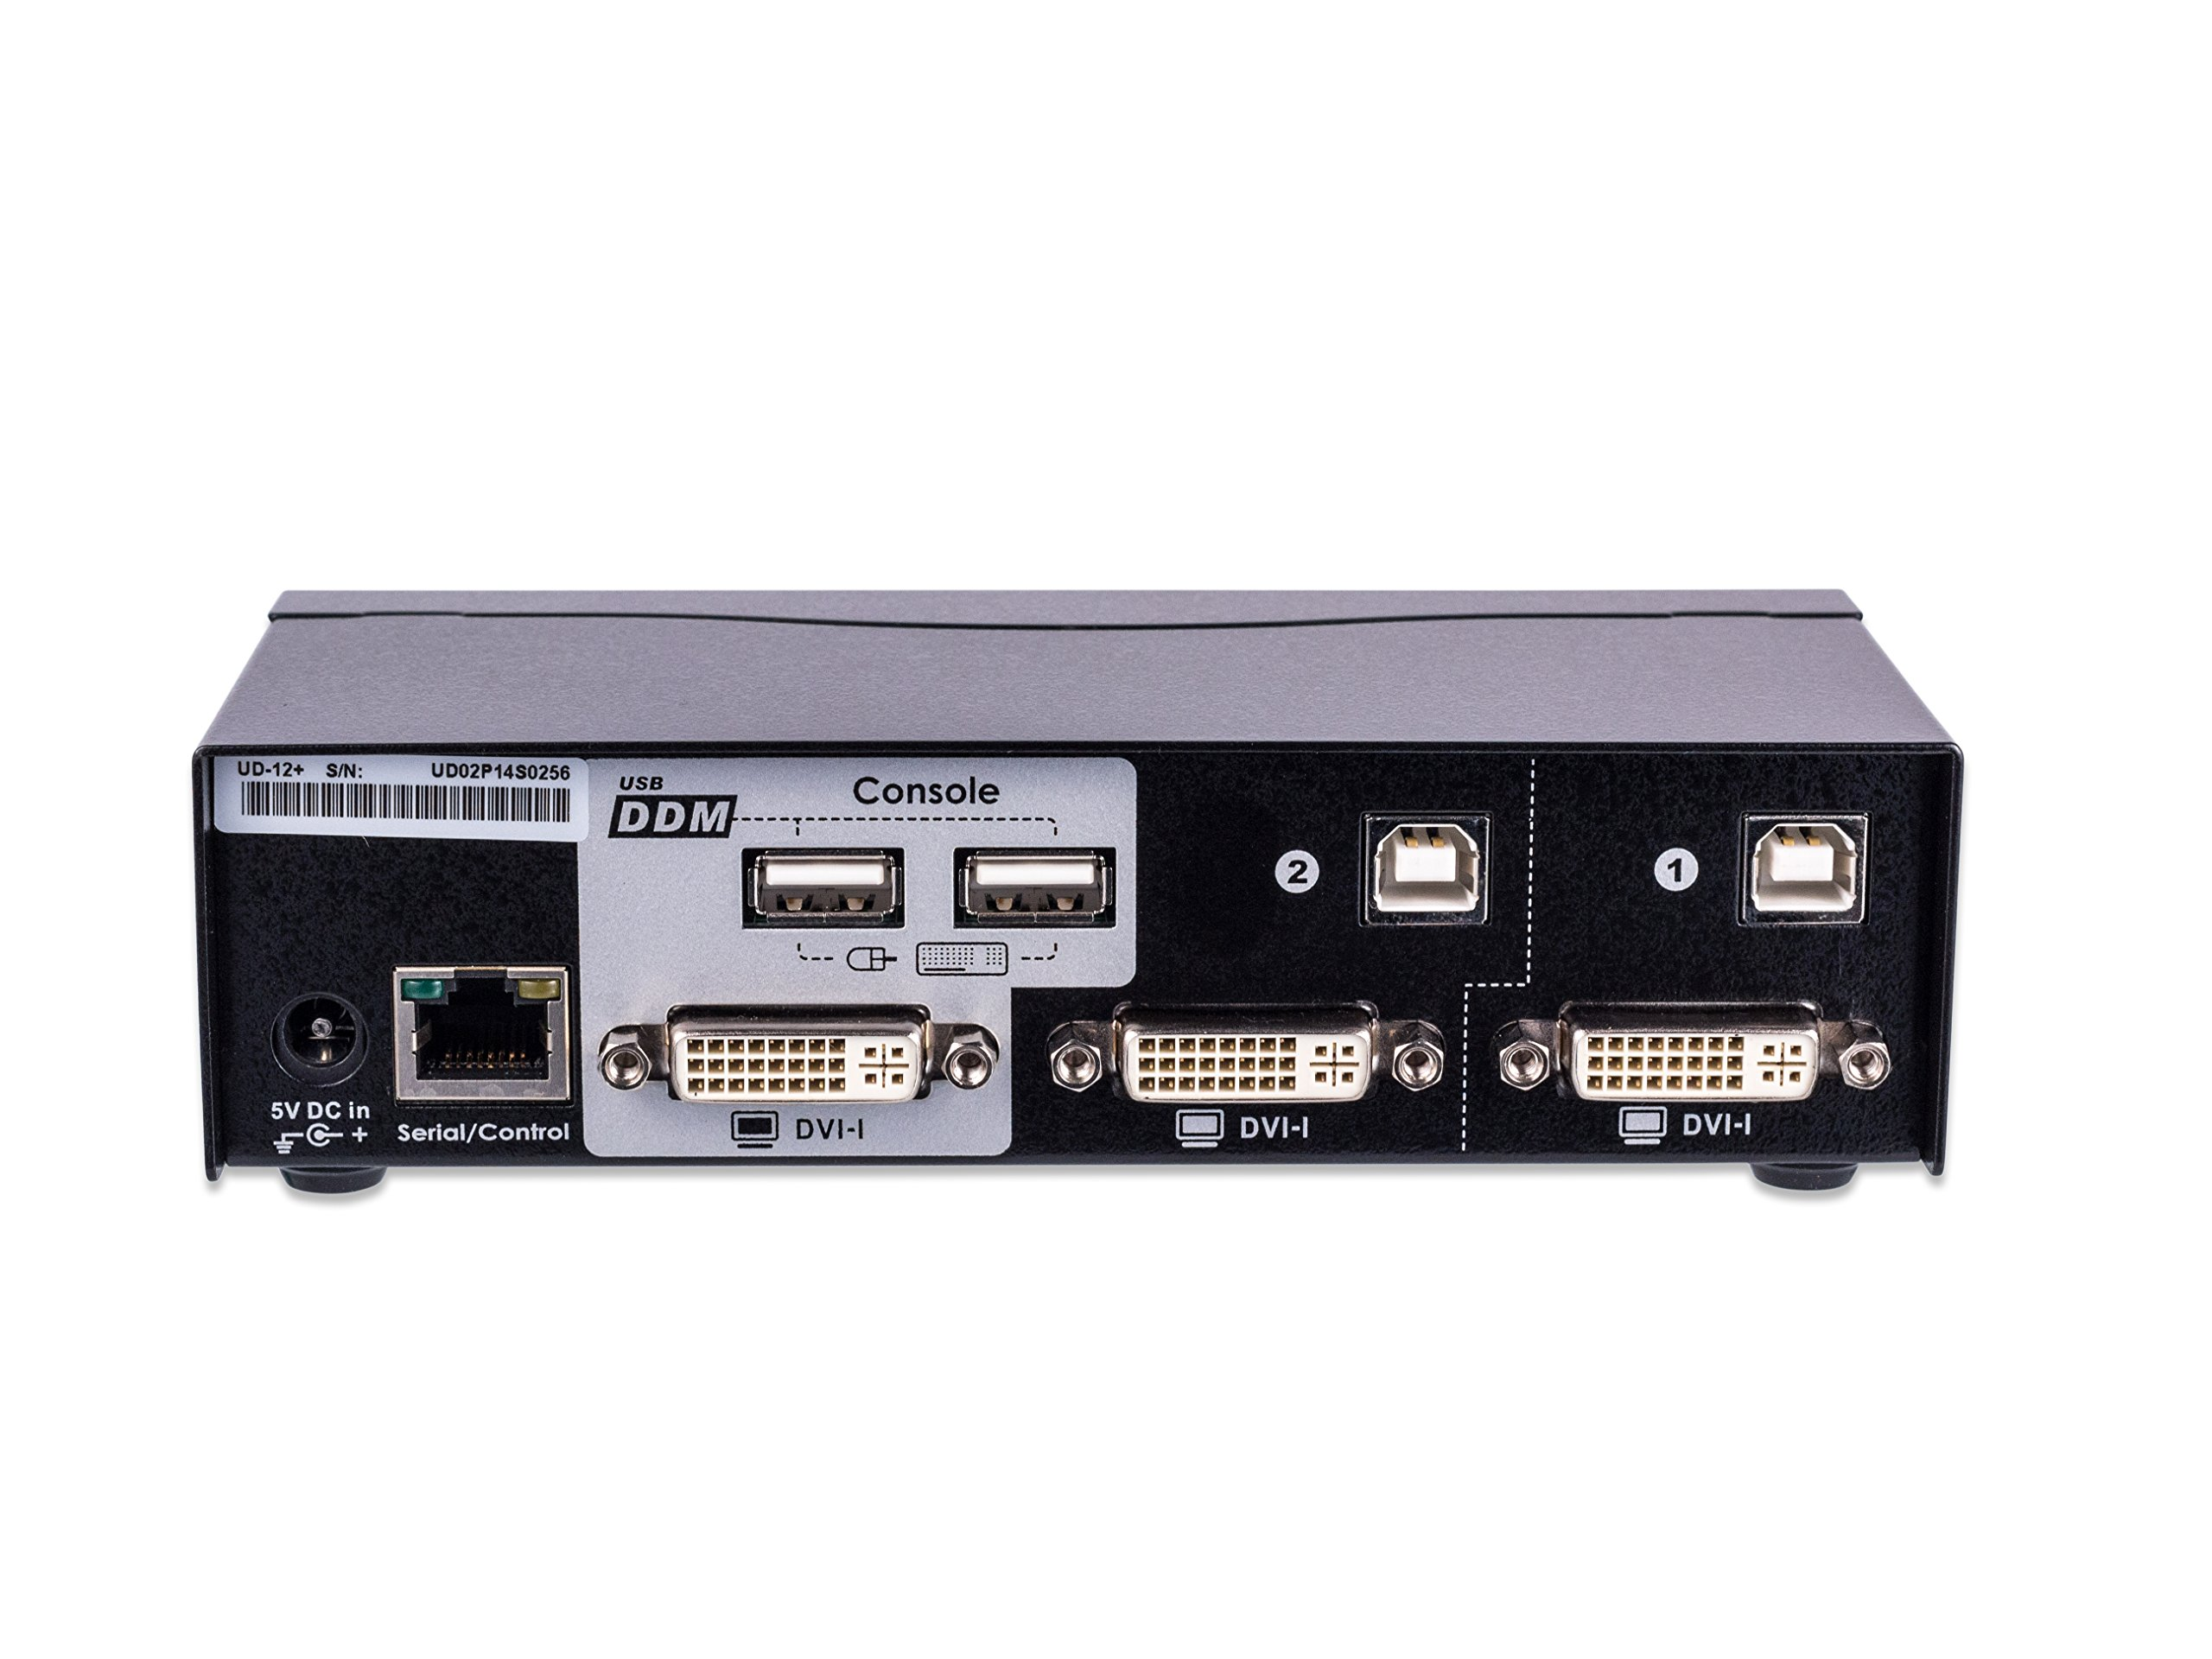 ConnectPRO UD-12+KIT, 2-port USB DVI KVM switch w/ DDM & multi-hotkey by ConnectPRO (Image #3)